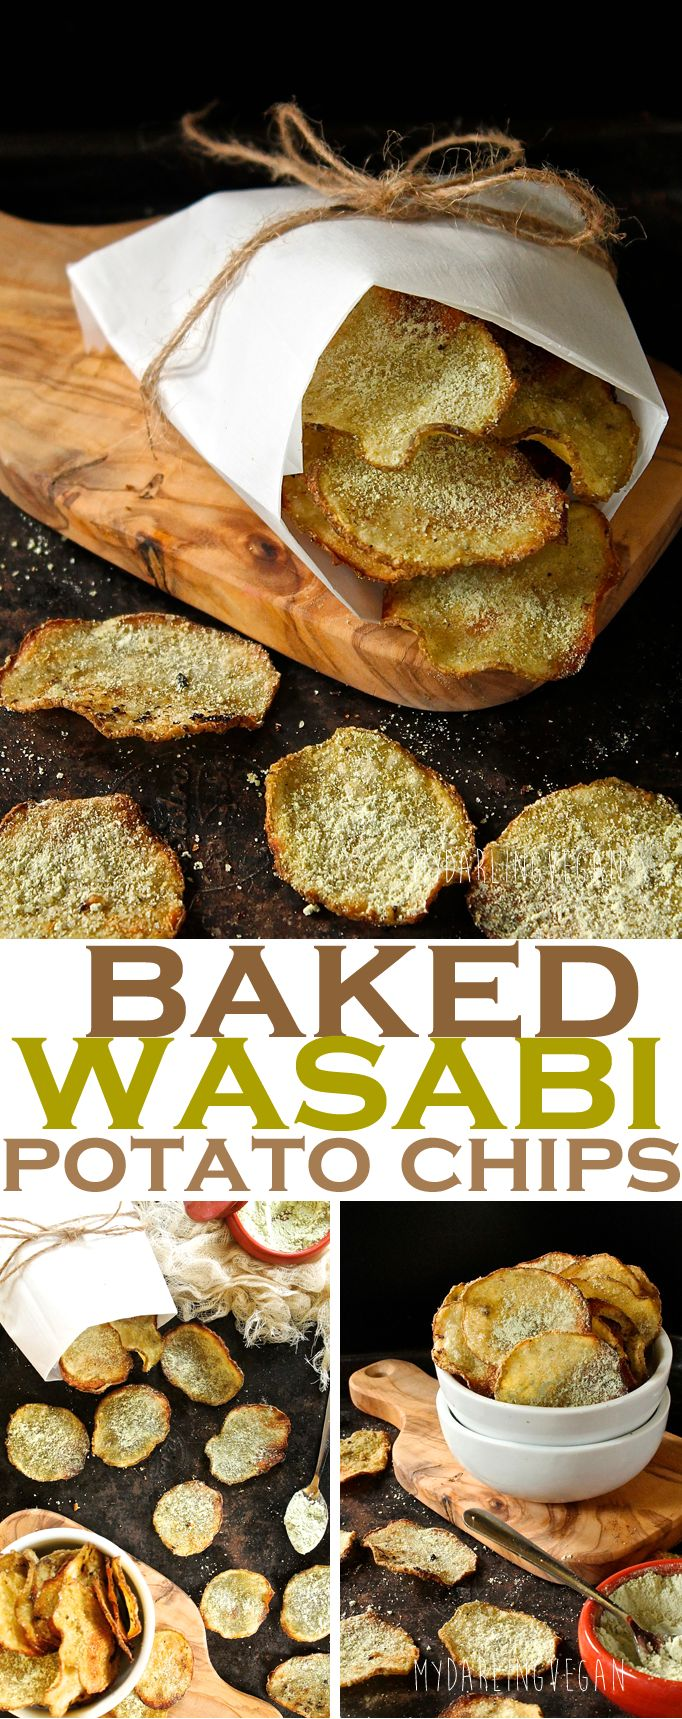 A snack with a little kick: Baked Wasabi Potato Chips. Click the photo for the full recipe.